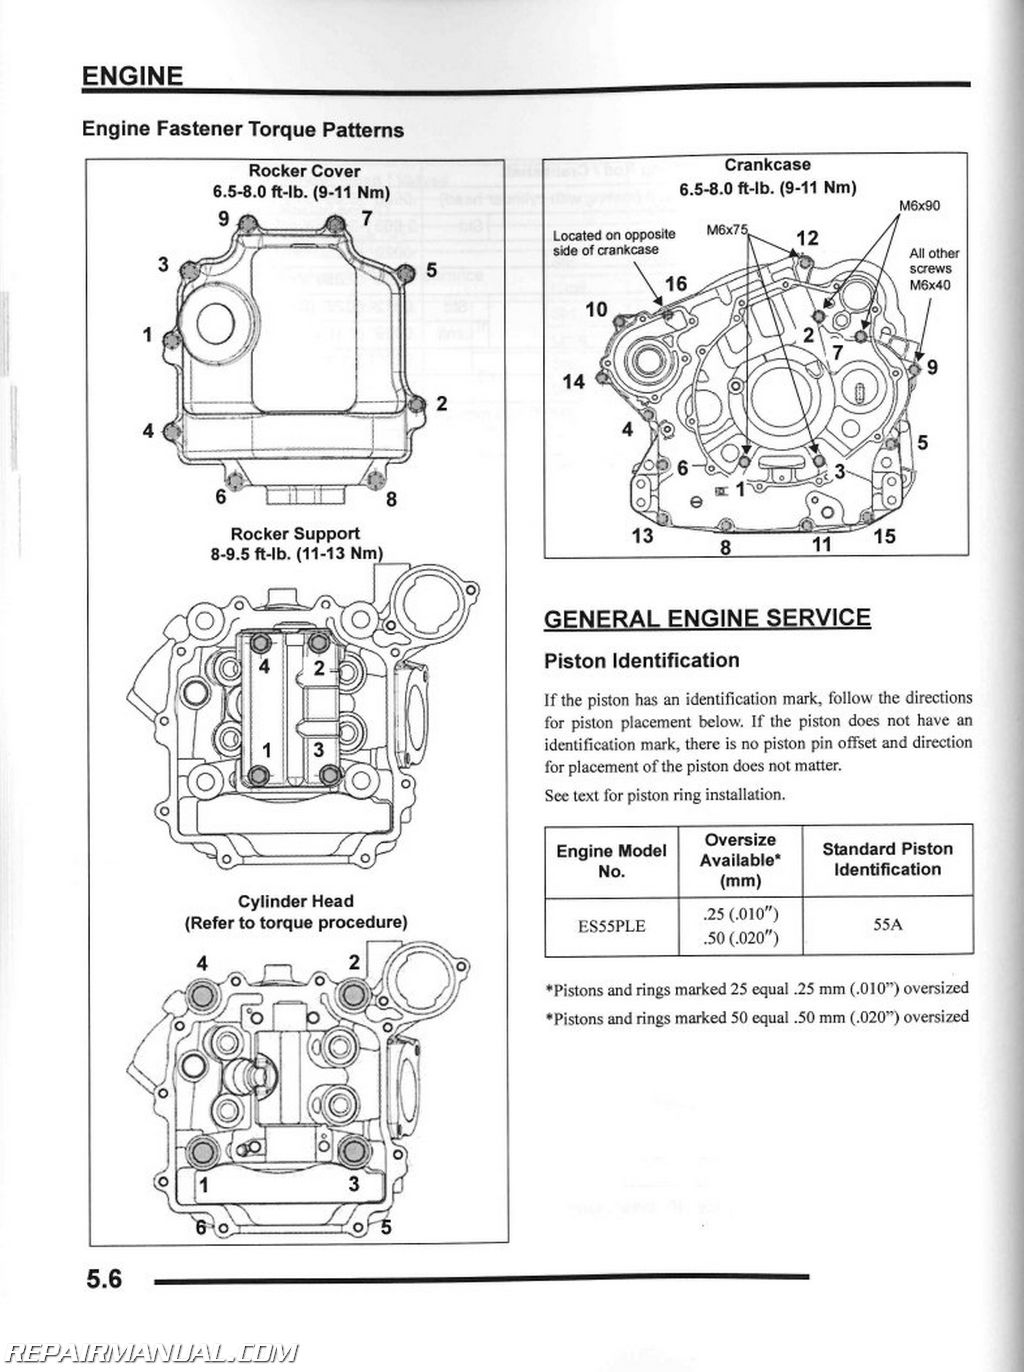 2010 polaris sportsman xp 550 atv service manual dodge electric brake wiring diagram